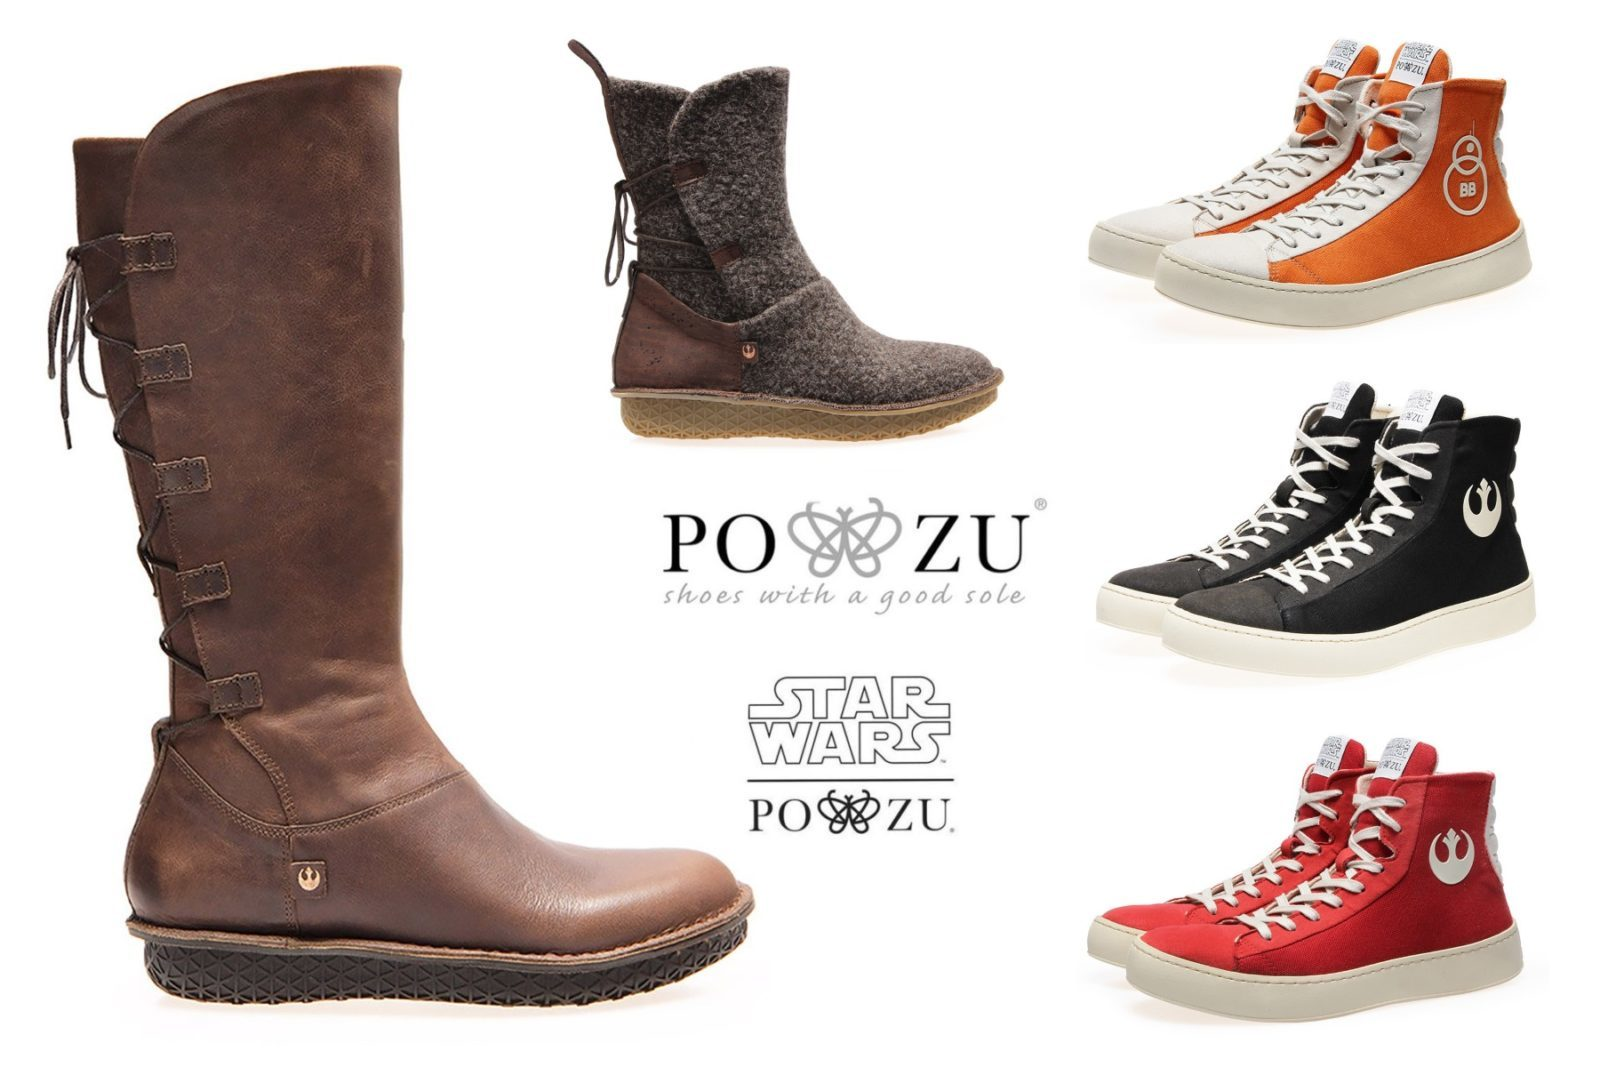 Get £20 Off Po-Zu x Star Wars Footwear